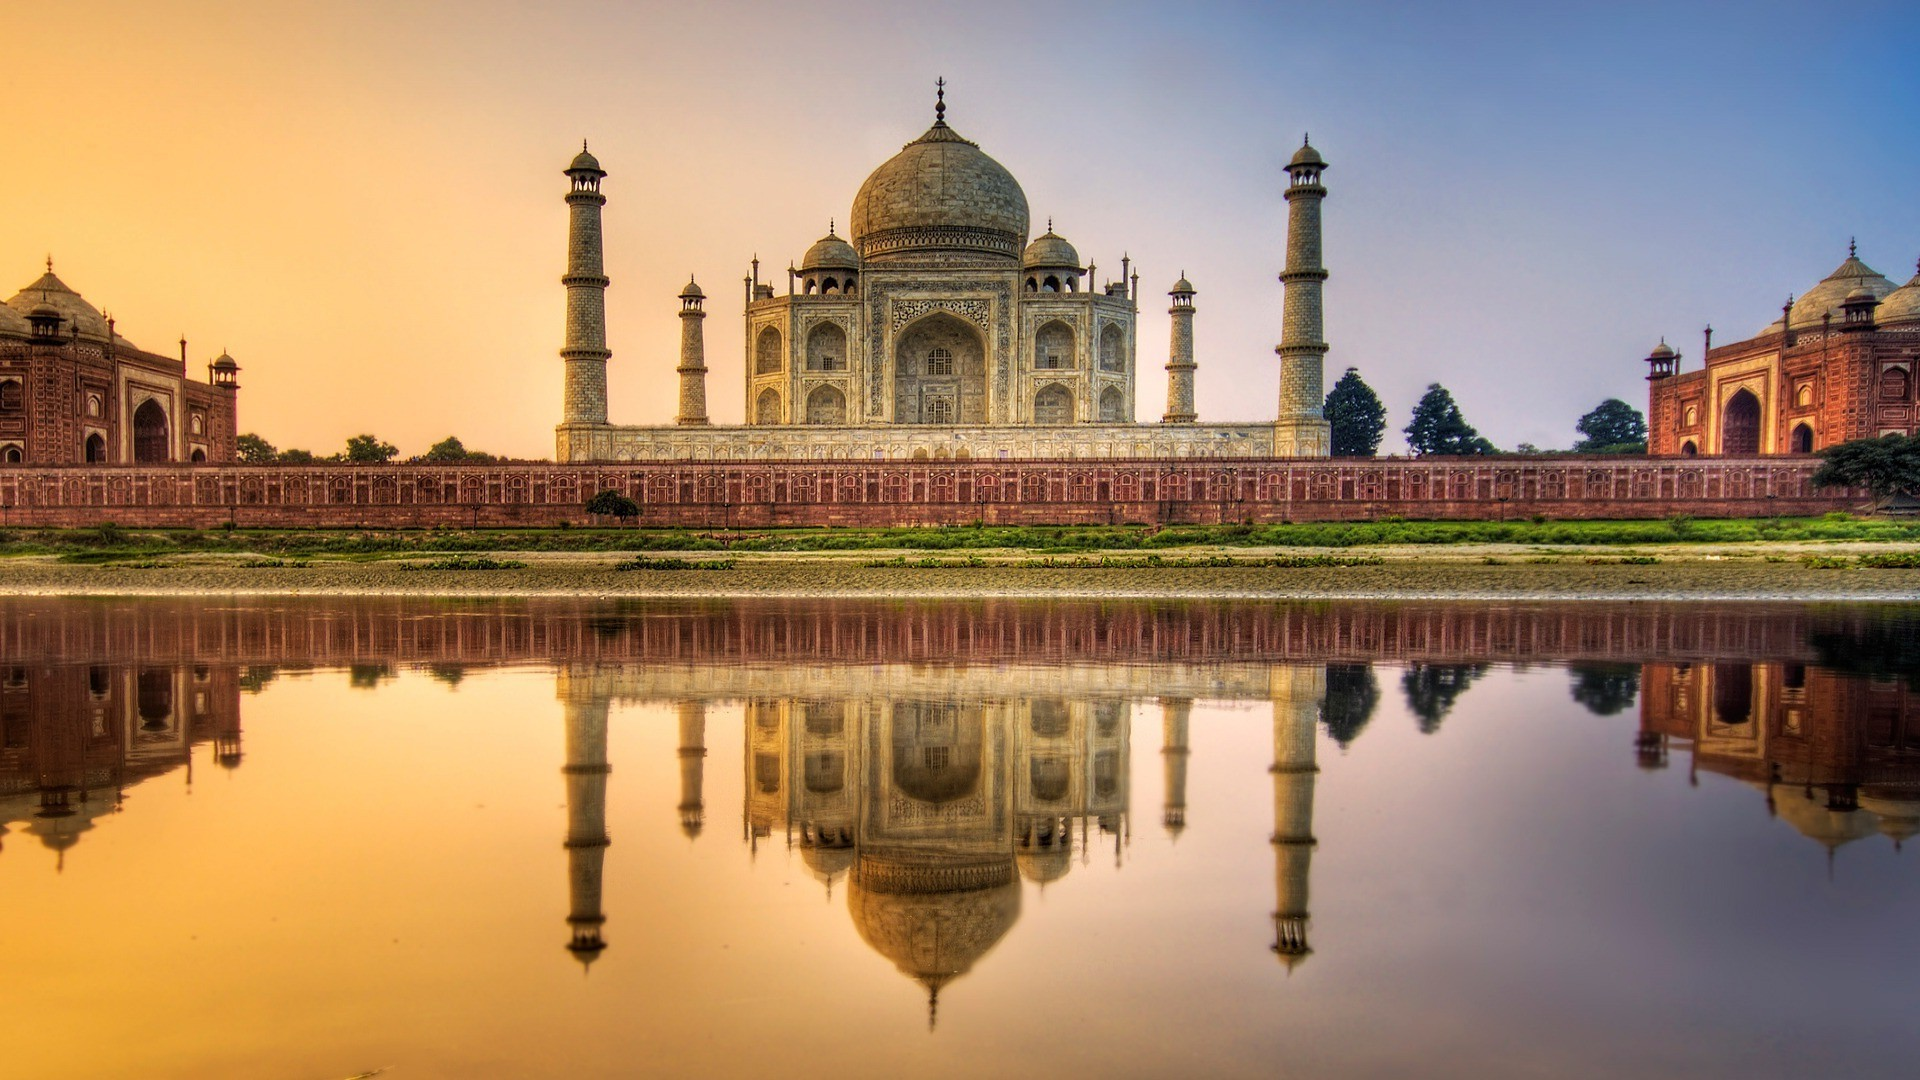 India wallpaper desktop wallpapertag - Taj mahal screensaver free download ...